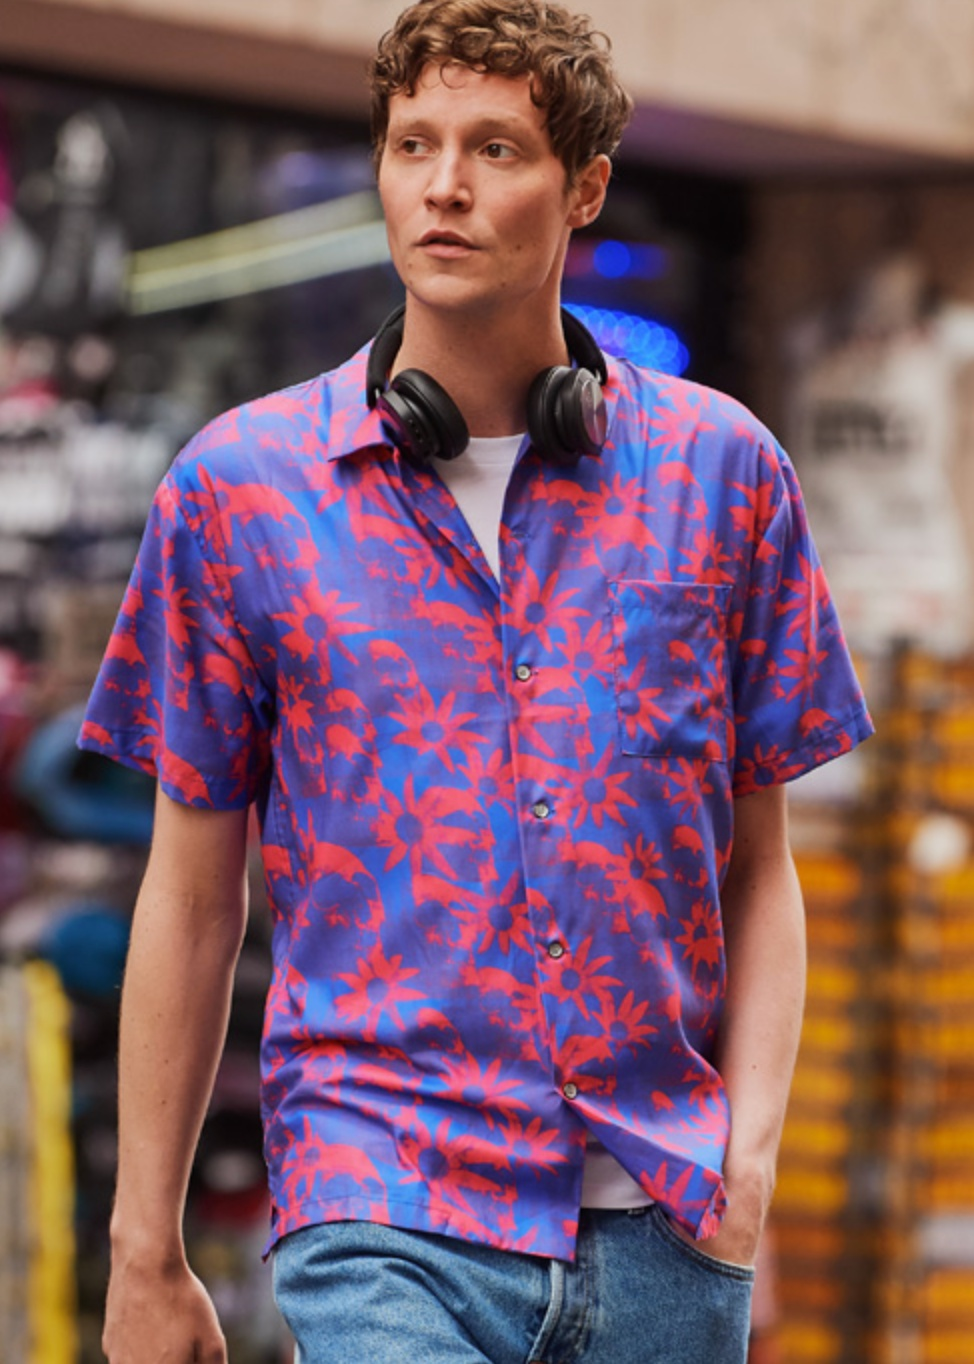 The Coolest Patterned Shirts for Summer